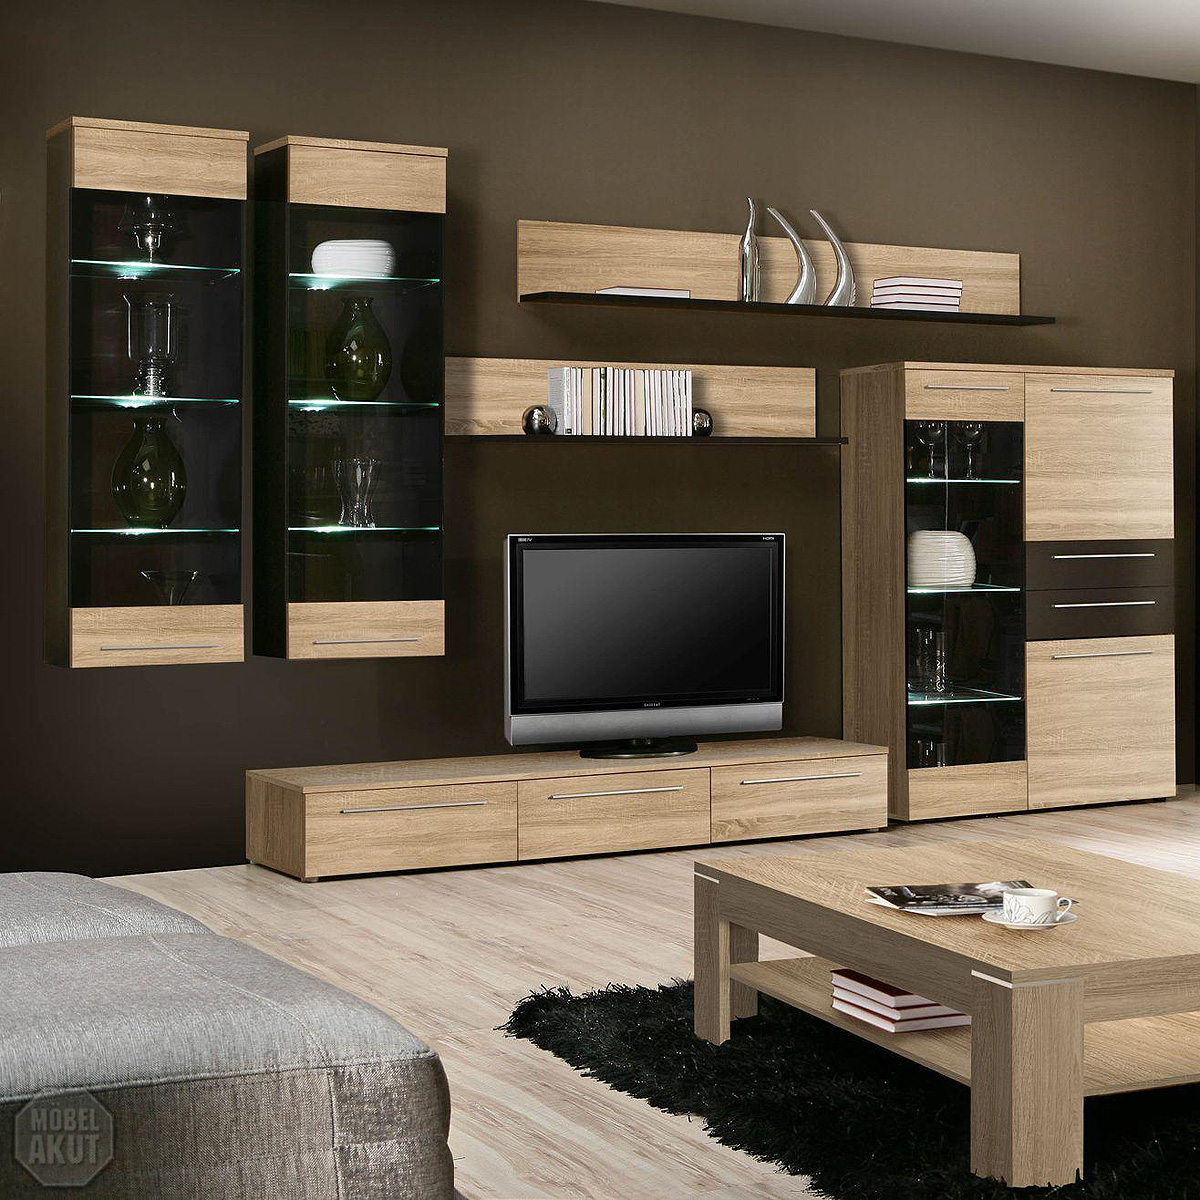 wohnwand fondo anbauwand wohnzimmer sonoma eiche s gerau. Black Bedroom Furniture Sets. Home Design Ideas